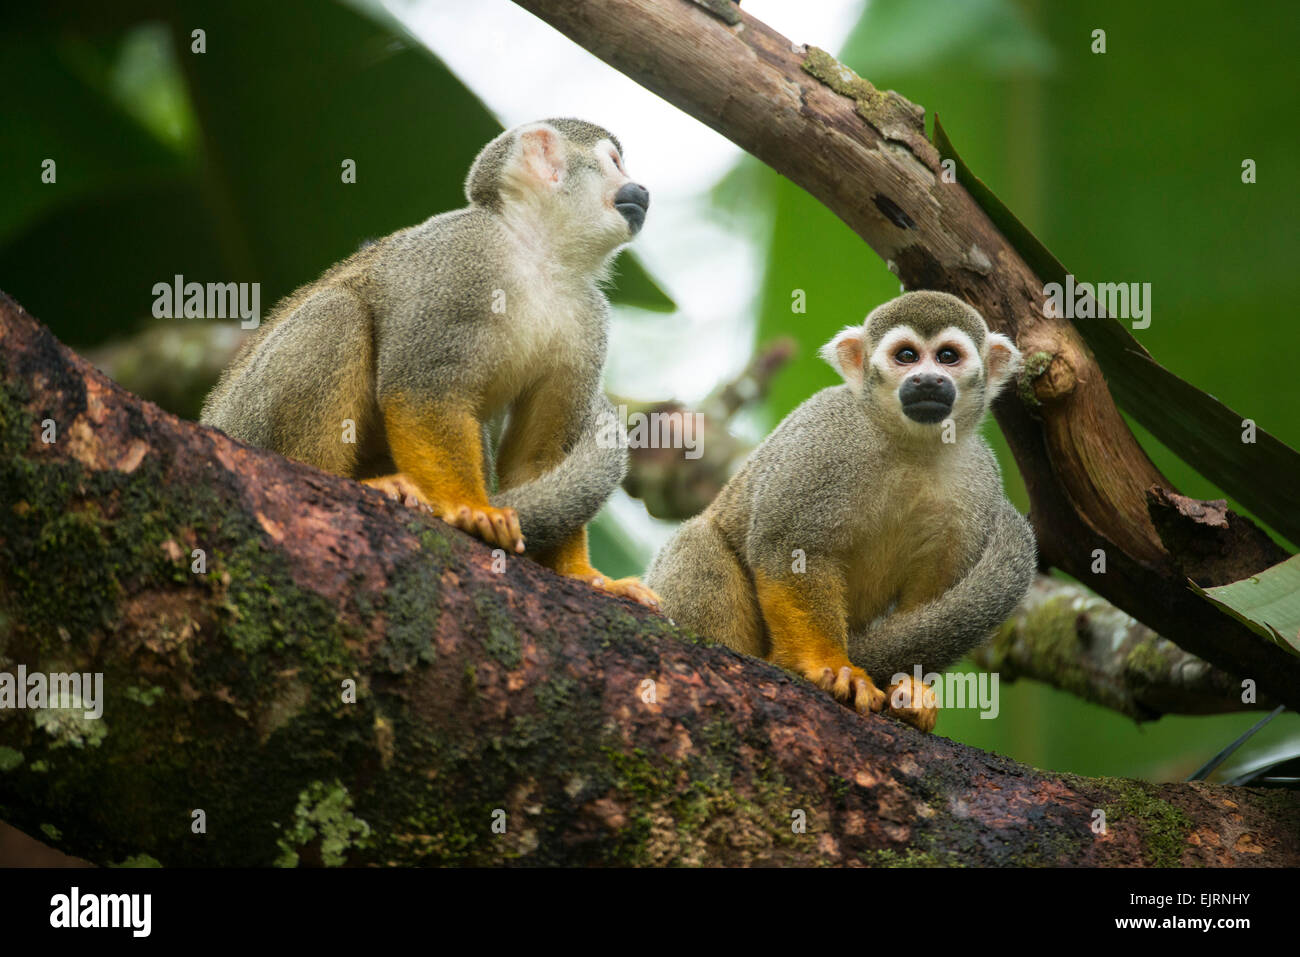 Squirrel monkeys, Saimiri, Central Suriname Nature Reserve, Suriname - Stock Image